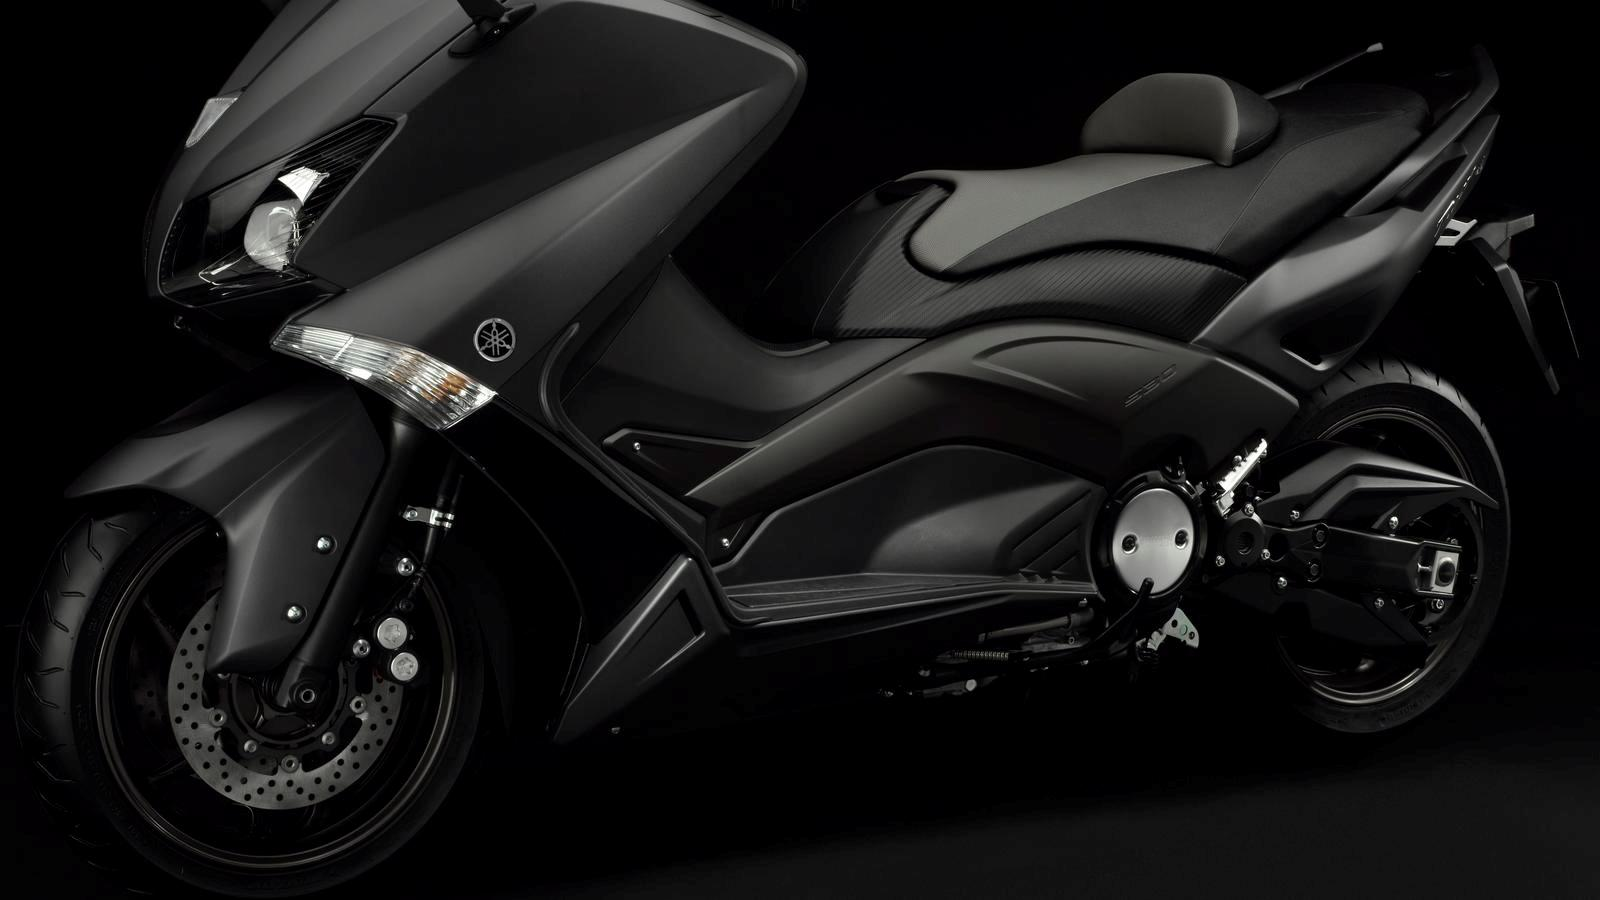 yamaha t max 500 2011. Black Bedroom Furniture Sets. Home Design Ideas